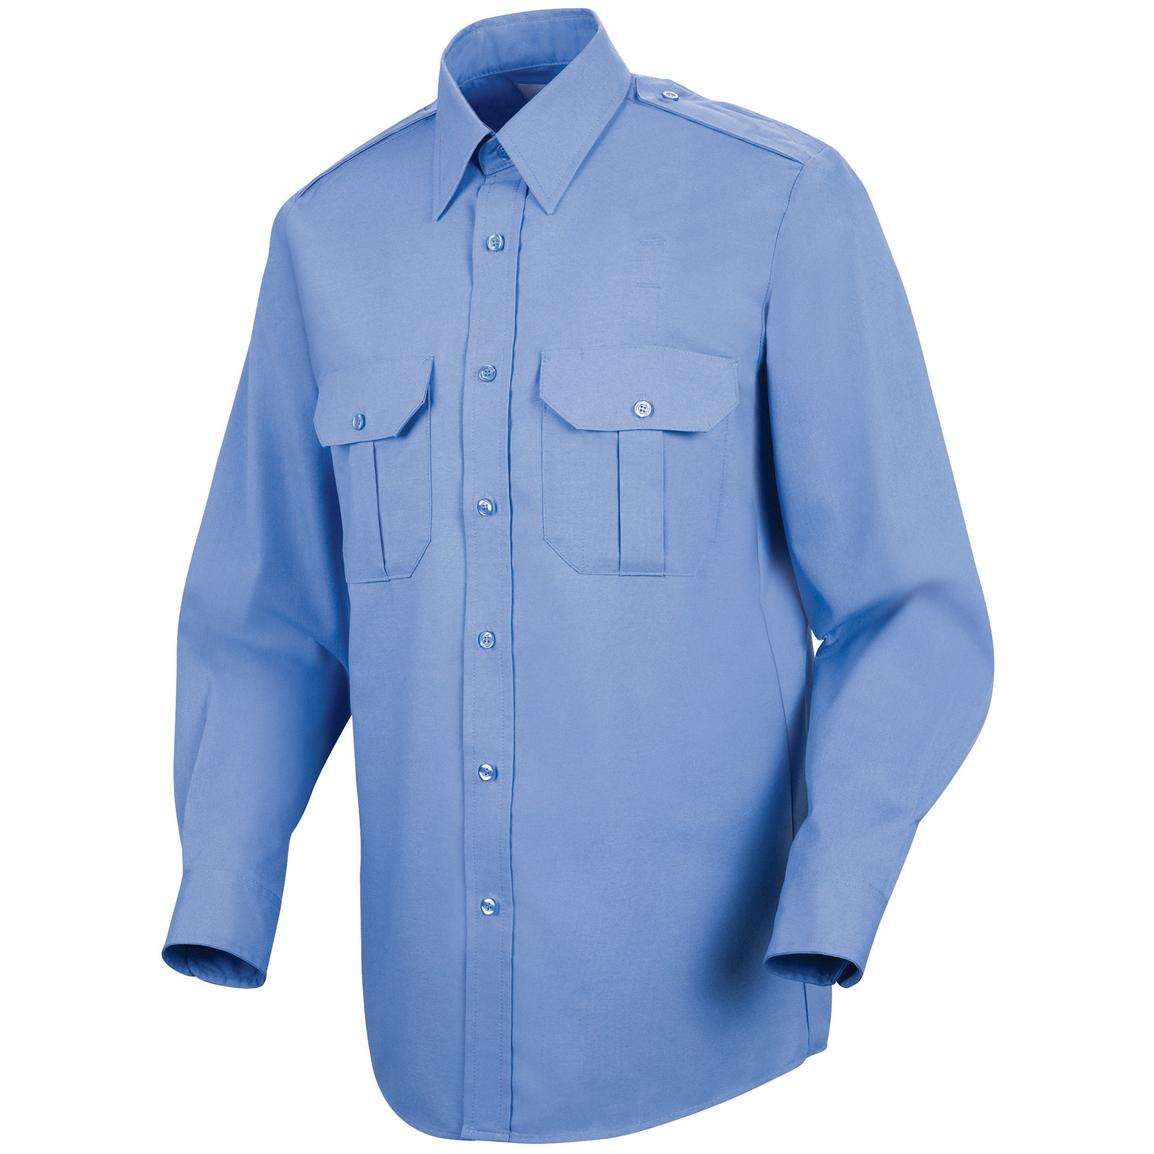 Men's Horace Small® Long-sleeved Basic Security Shirt, Medium Blue